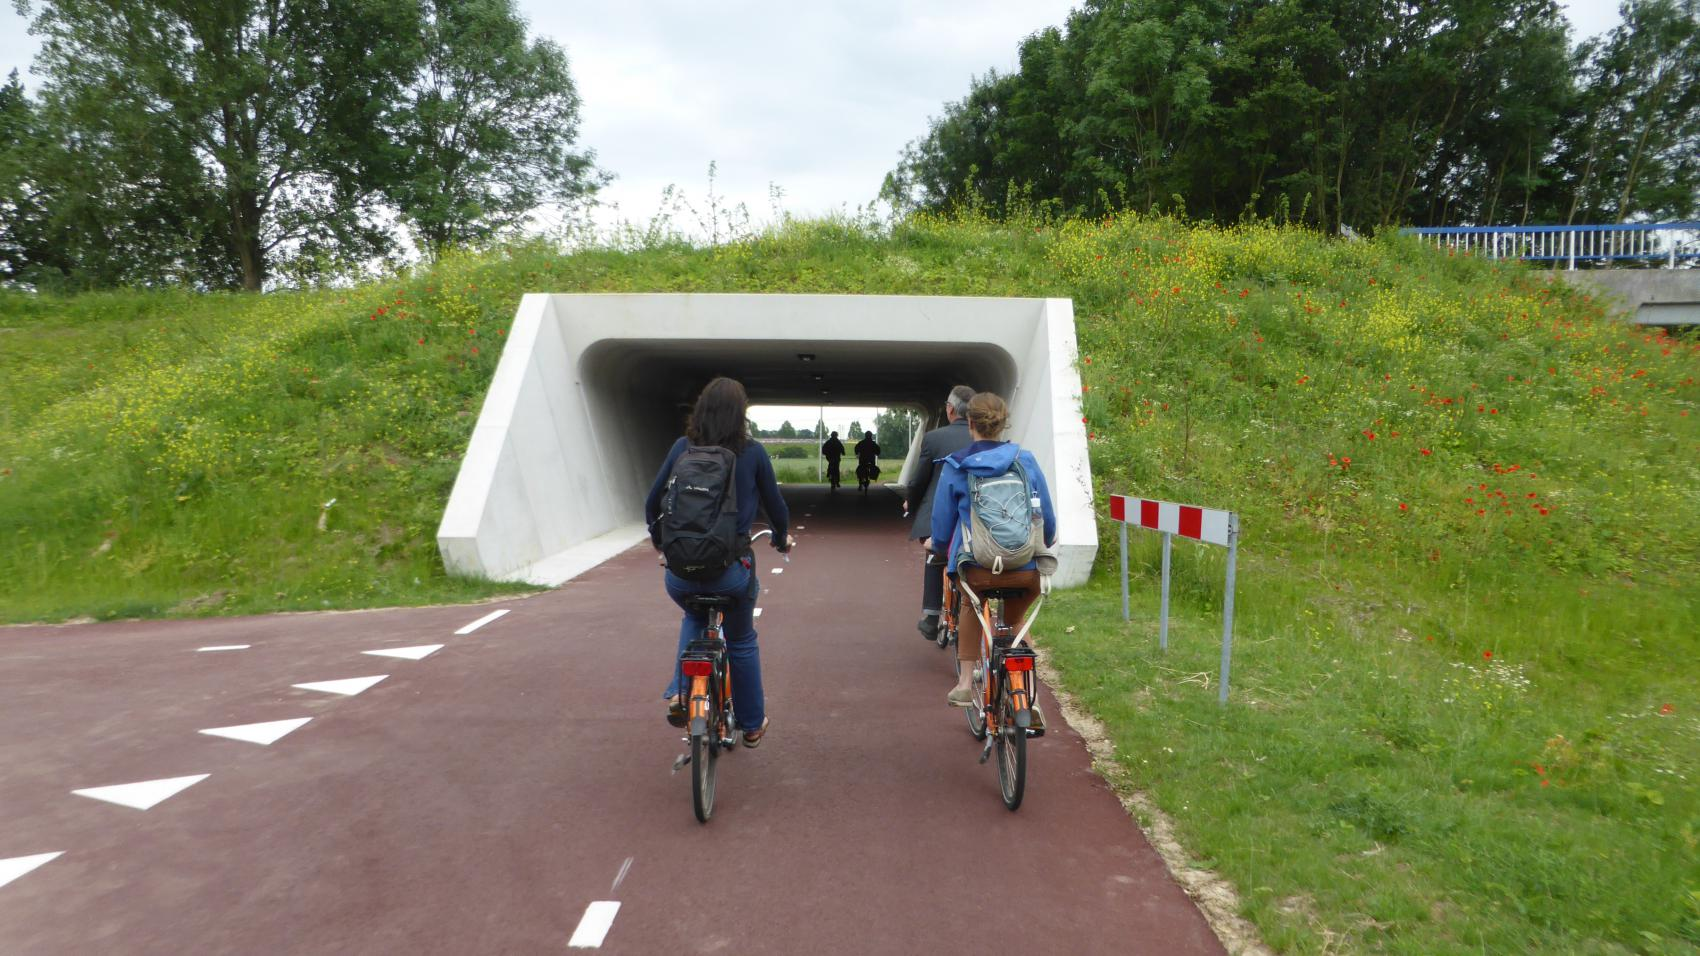 The Kattenleger tunnel is very simple and does not require overcoming any height difference, but shortened the route by 250 m and eliminated the need of crossing a busy road.